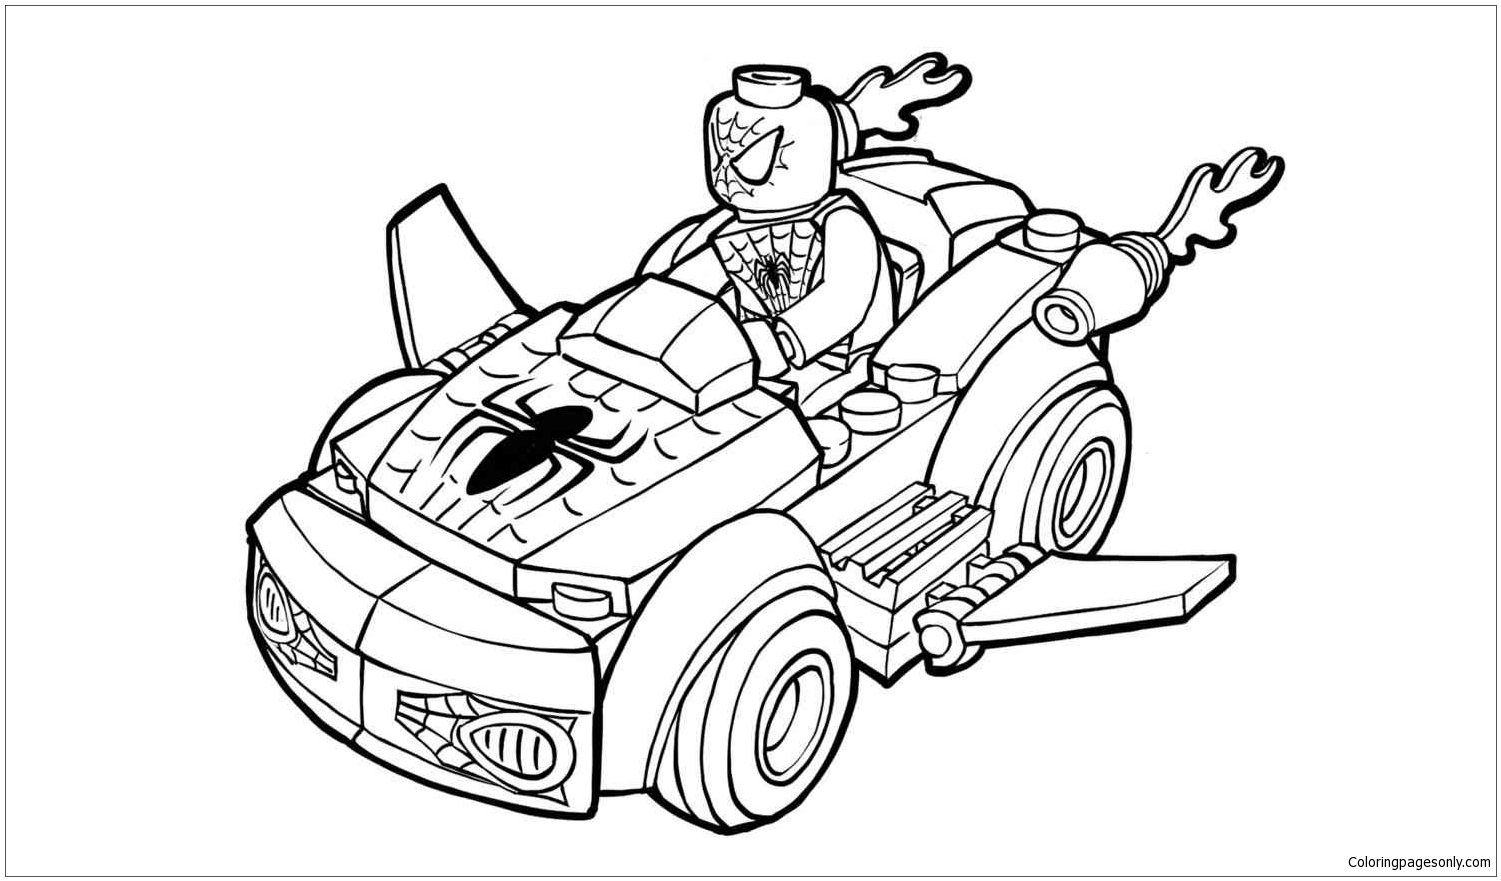 Spiderman Coloring pages | Coloring page | FREE Coloring pages for ... | 881x1501